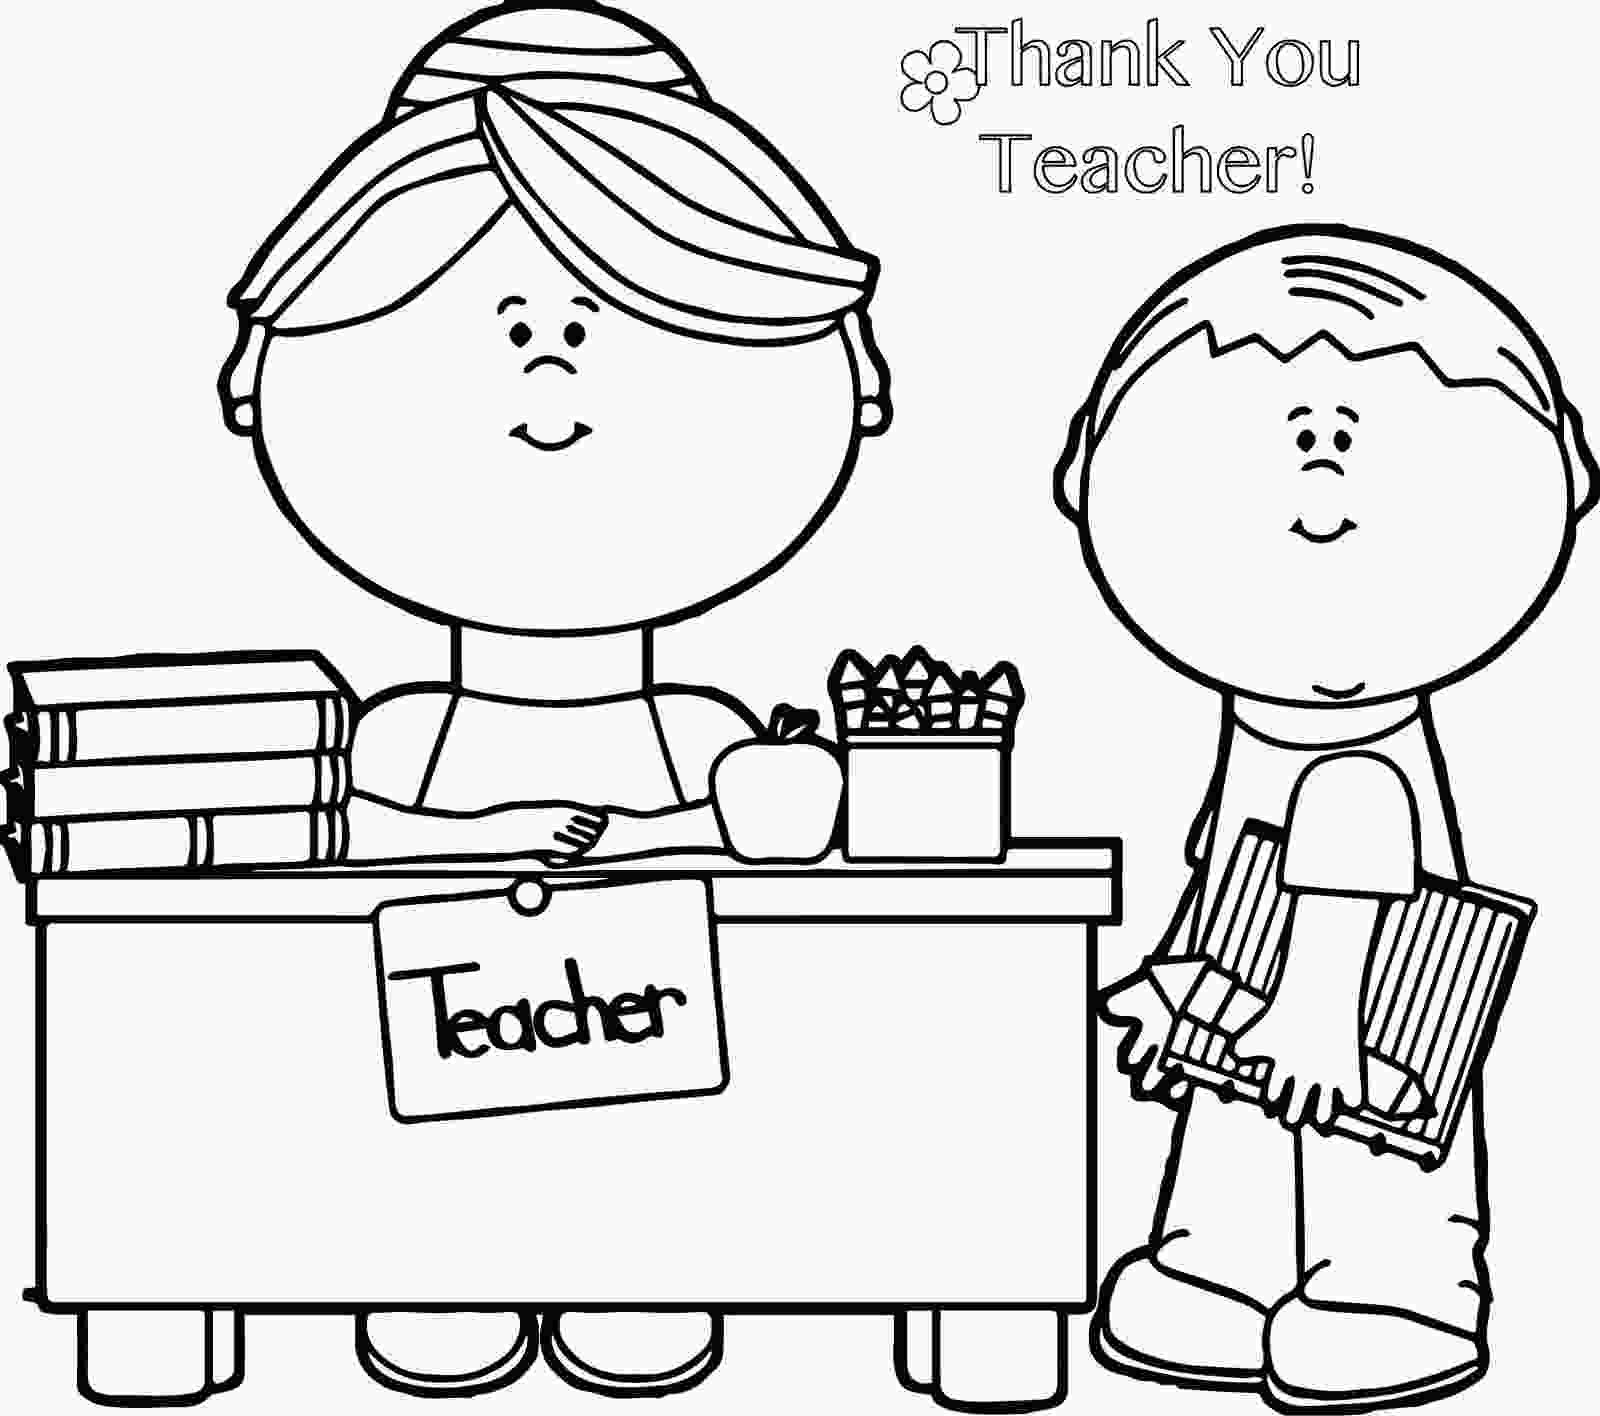 teacher coloring sheets thank you teacher coloring page for teacher gifts